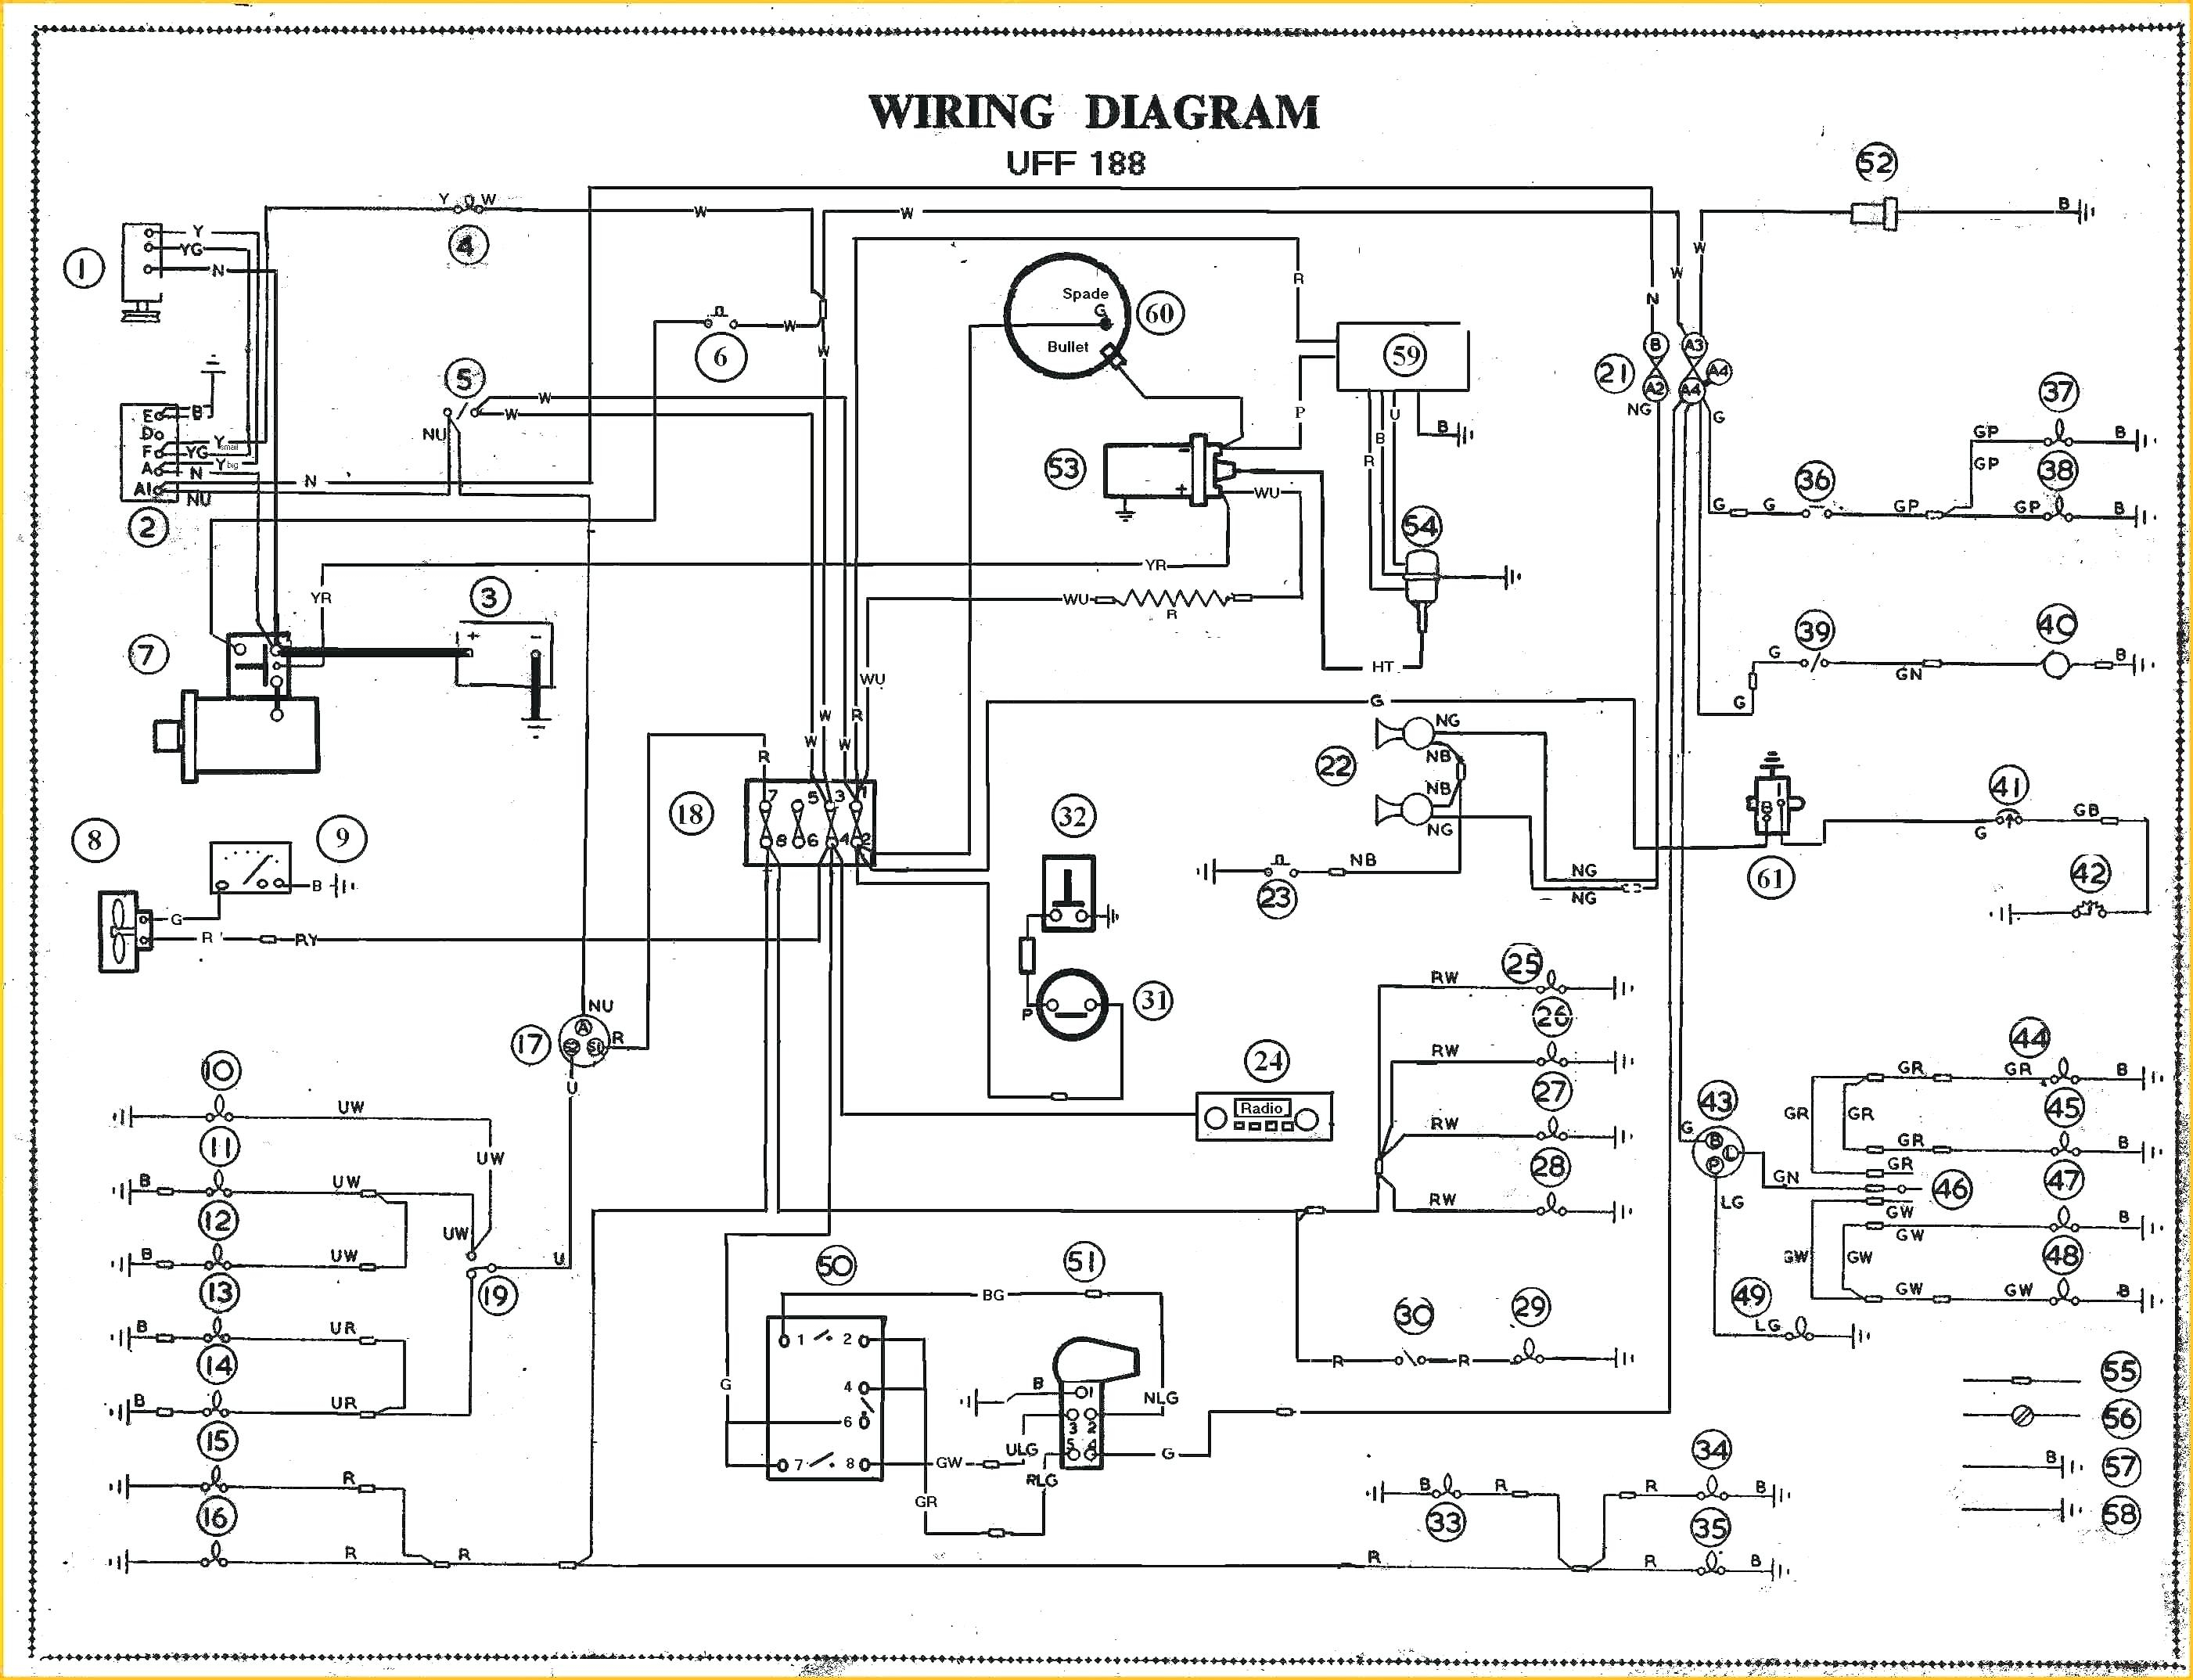 Air Conditioning Wiring Diagram